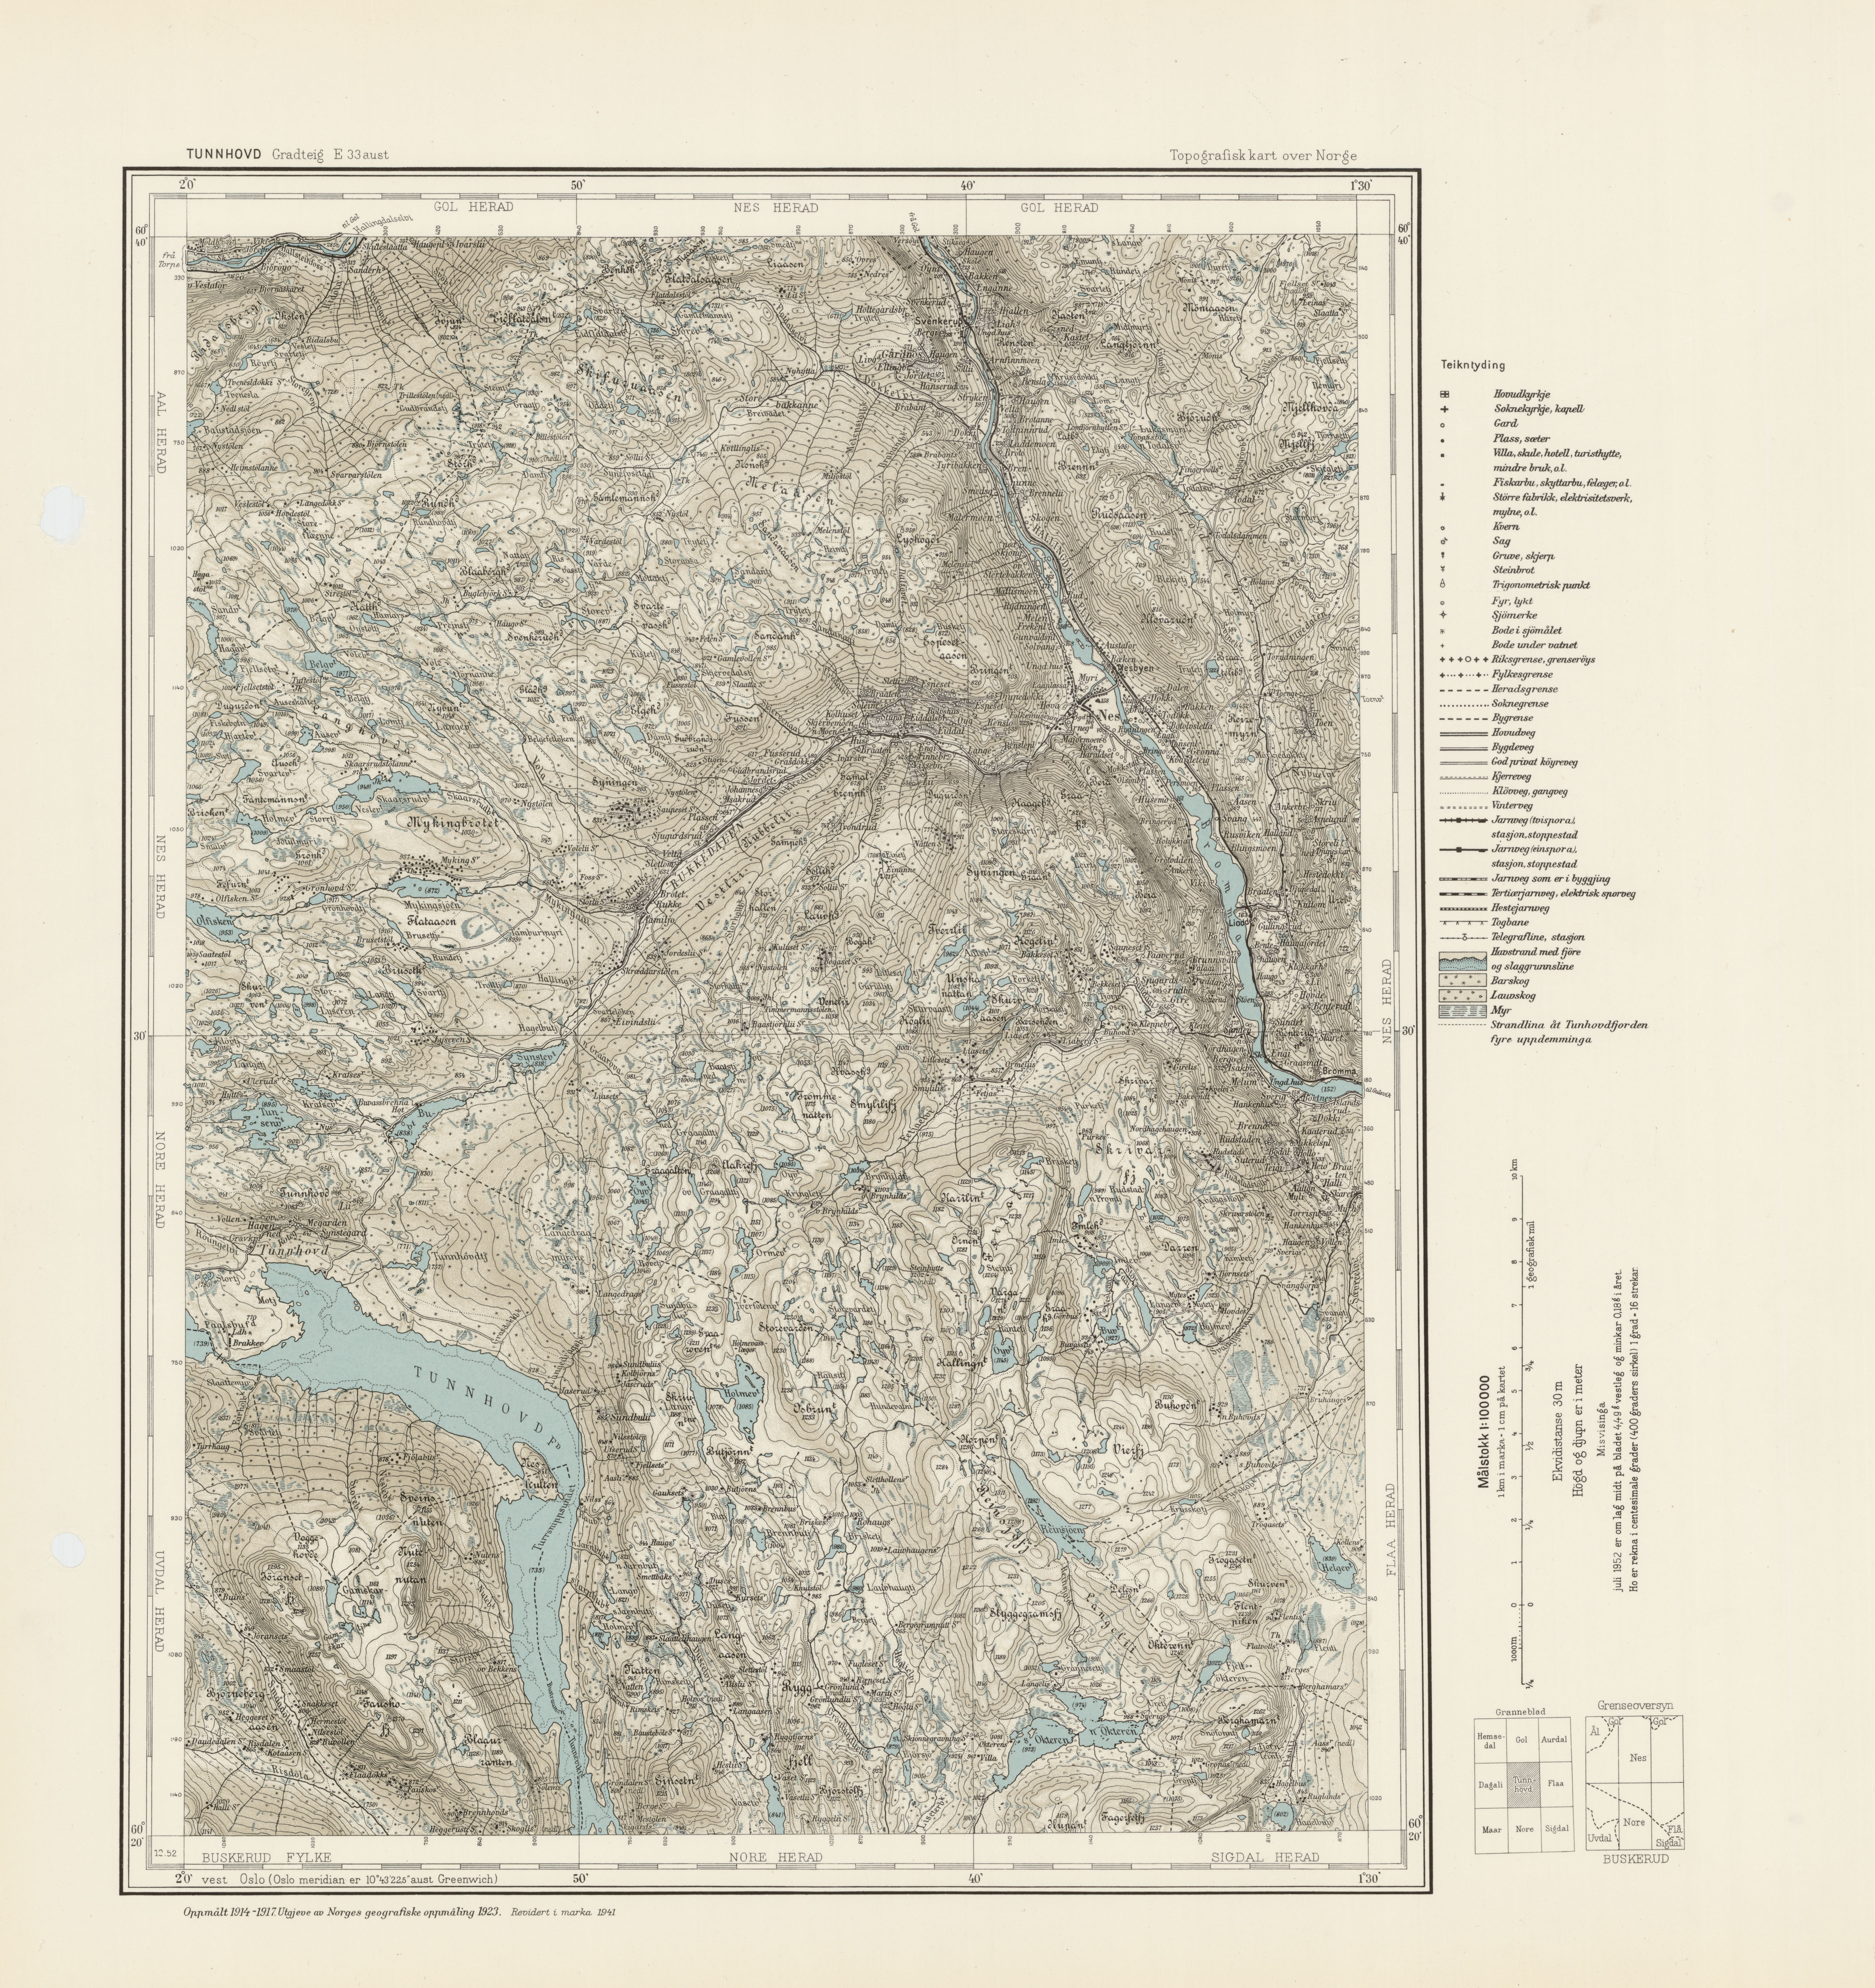 File Topographic map of Norway E33 vest Tunnhovd 1941